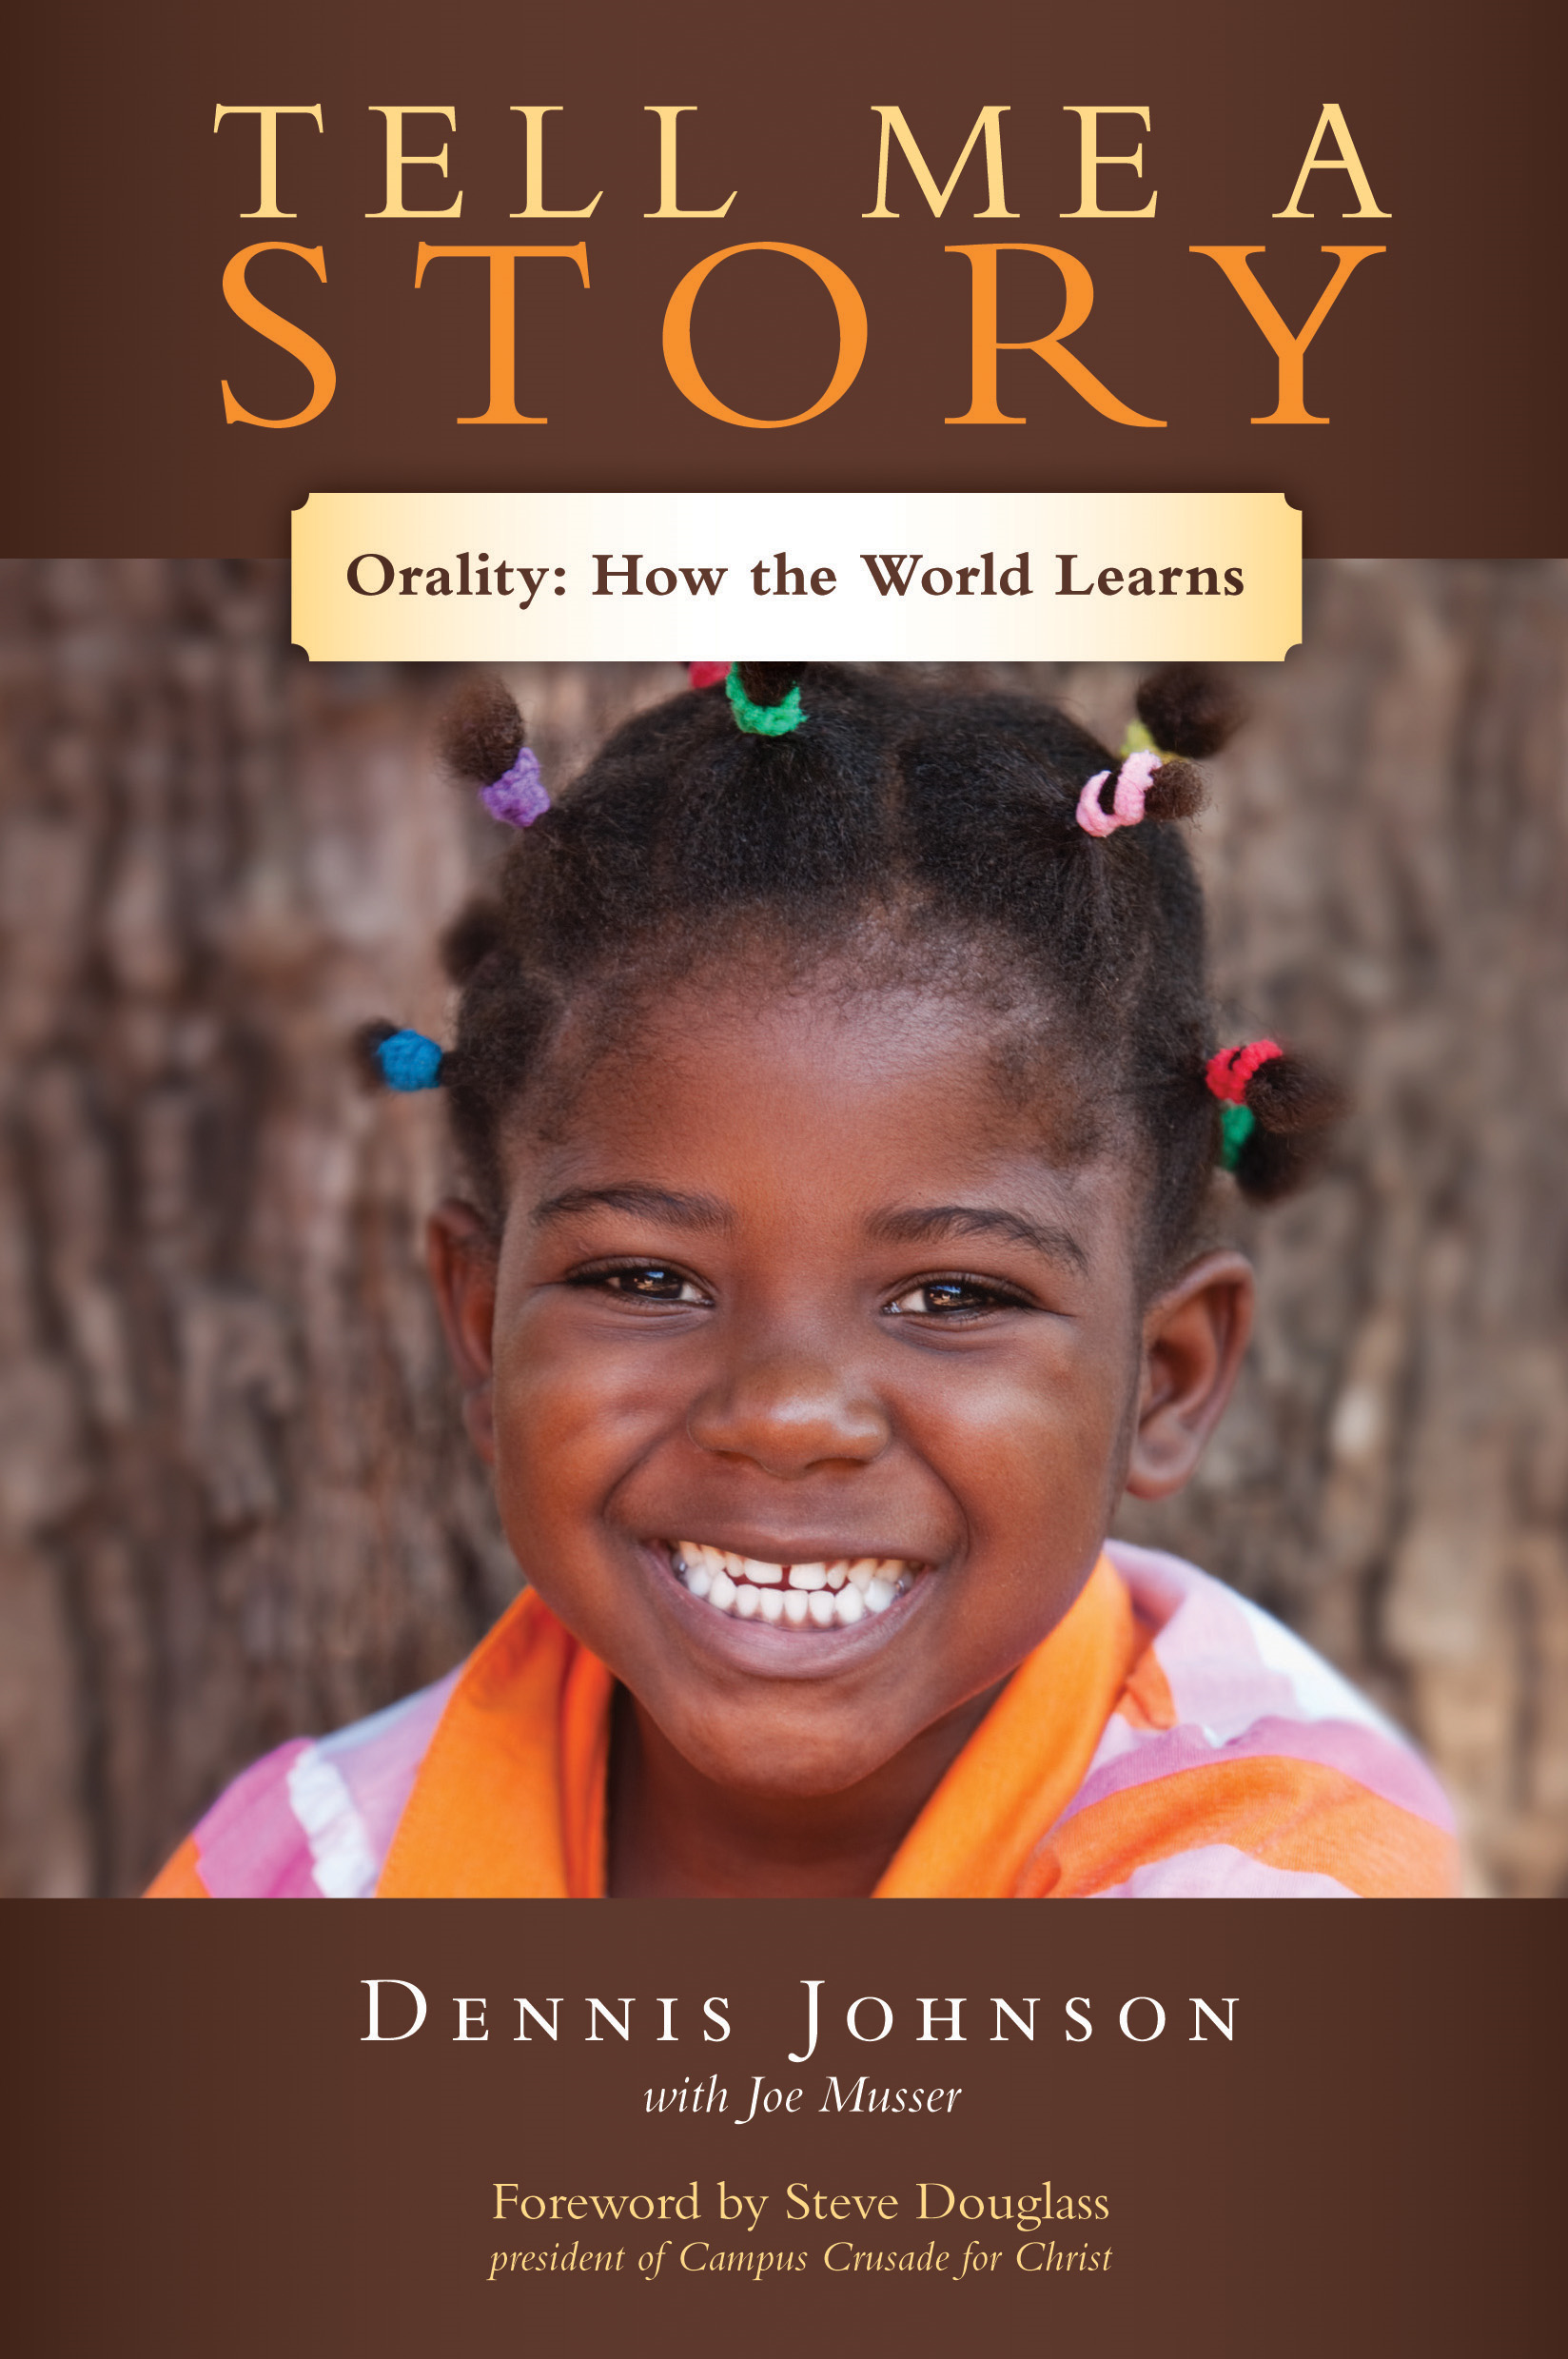 Tell Me a Story: Orality: How the World Learns